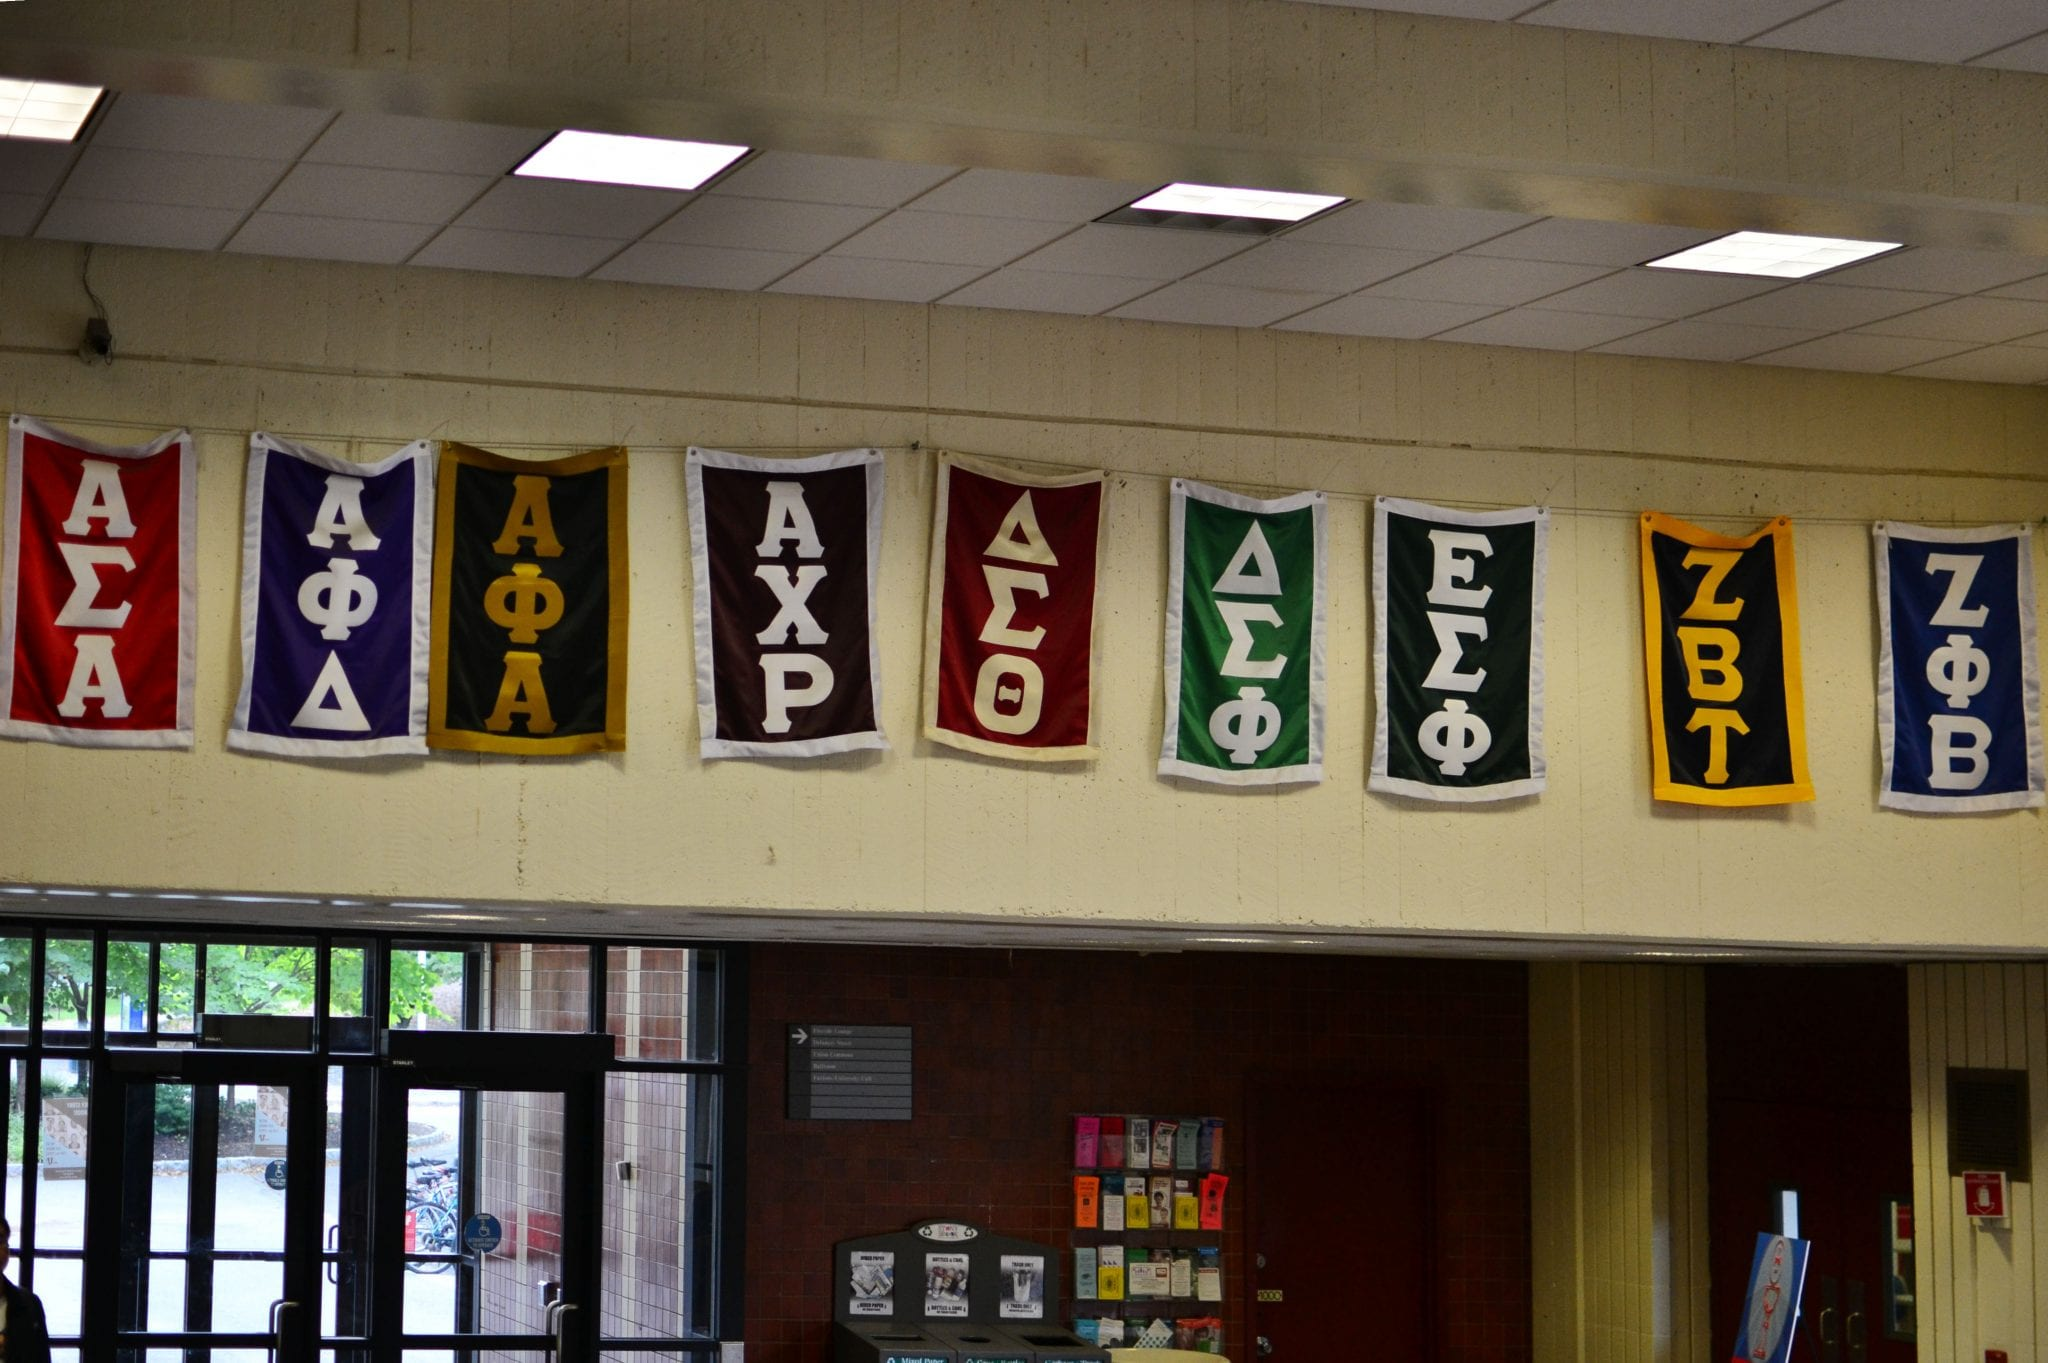 Greek organization banners are displayed in the lobby of the Stony Brook student union. (Nina Lin / The Statesman)